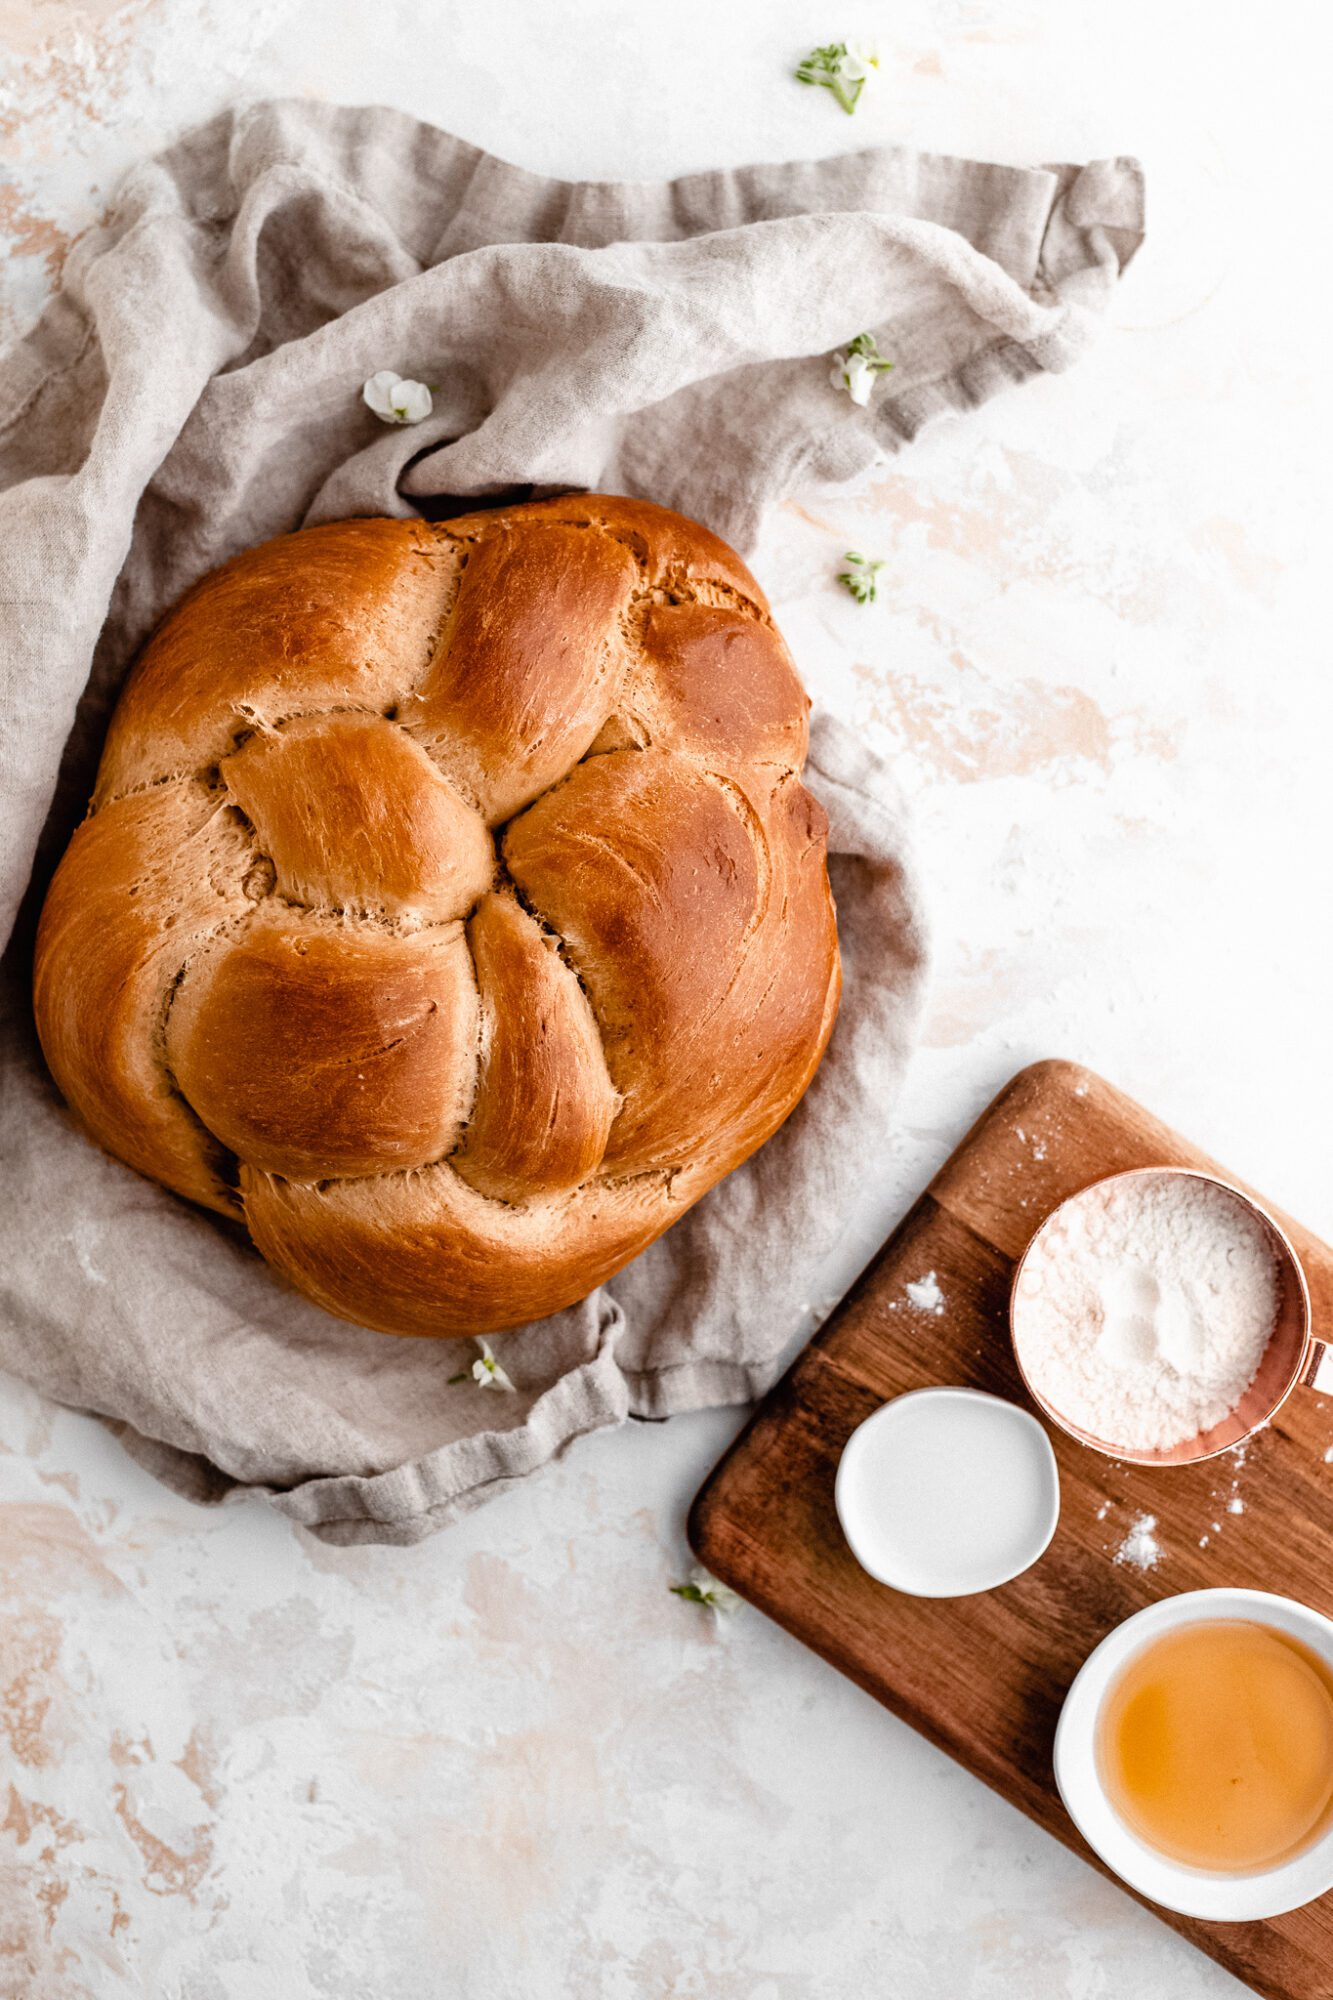 baked challah bread with ingredients